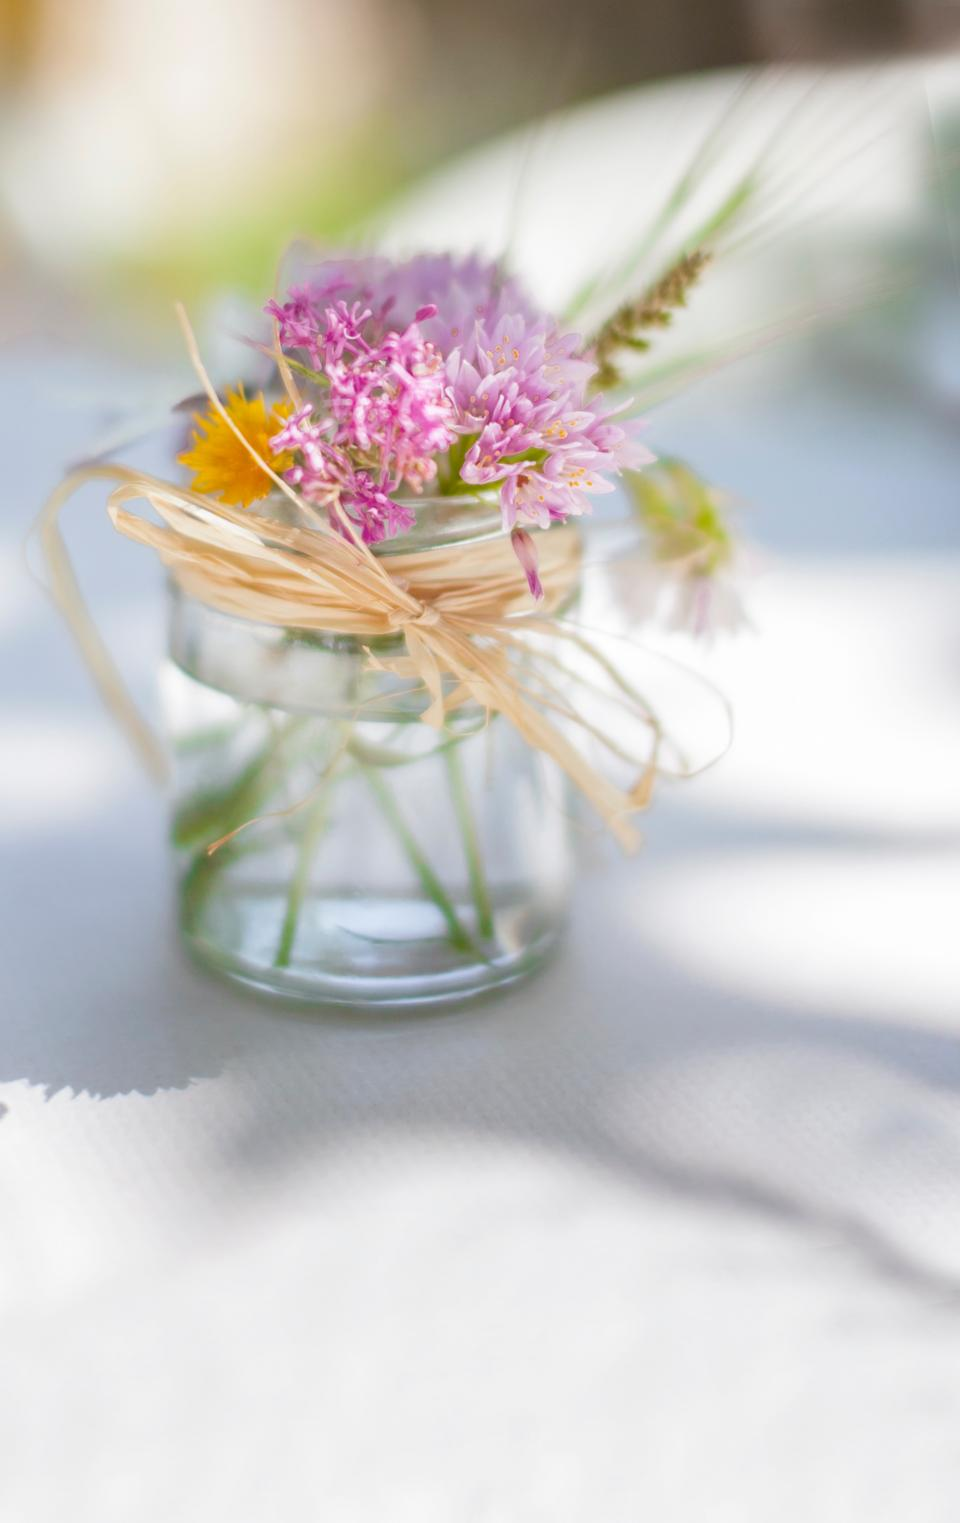 flowers, glass, water, ribbon, bokeh, blur, petals. lavender, white, nature